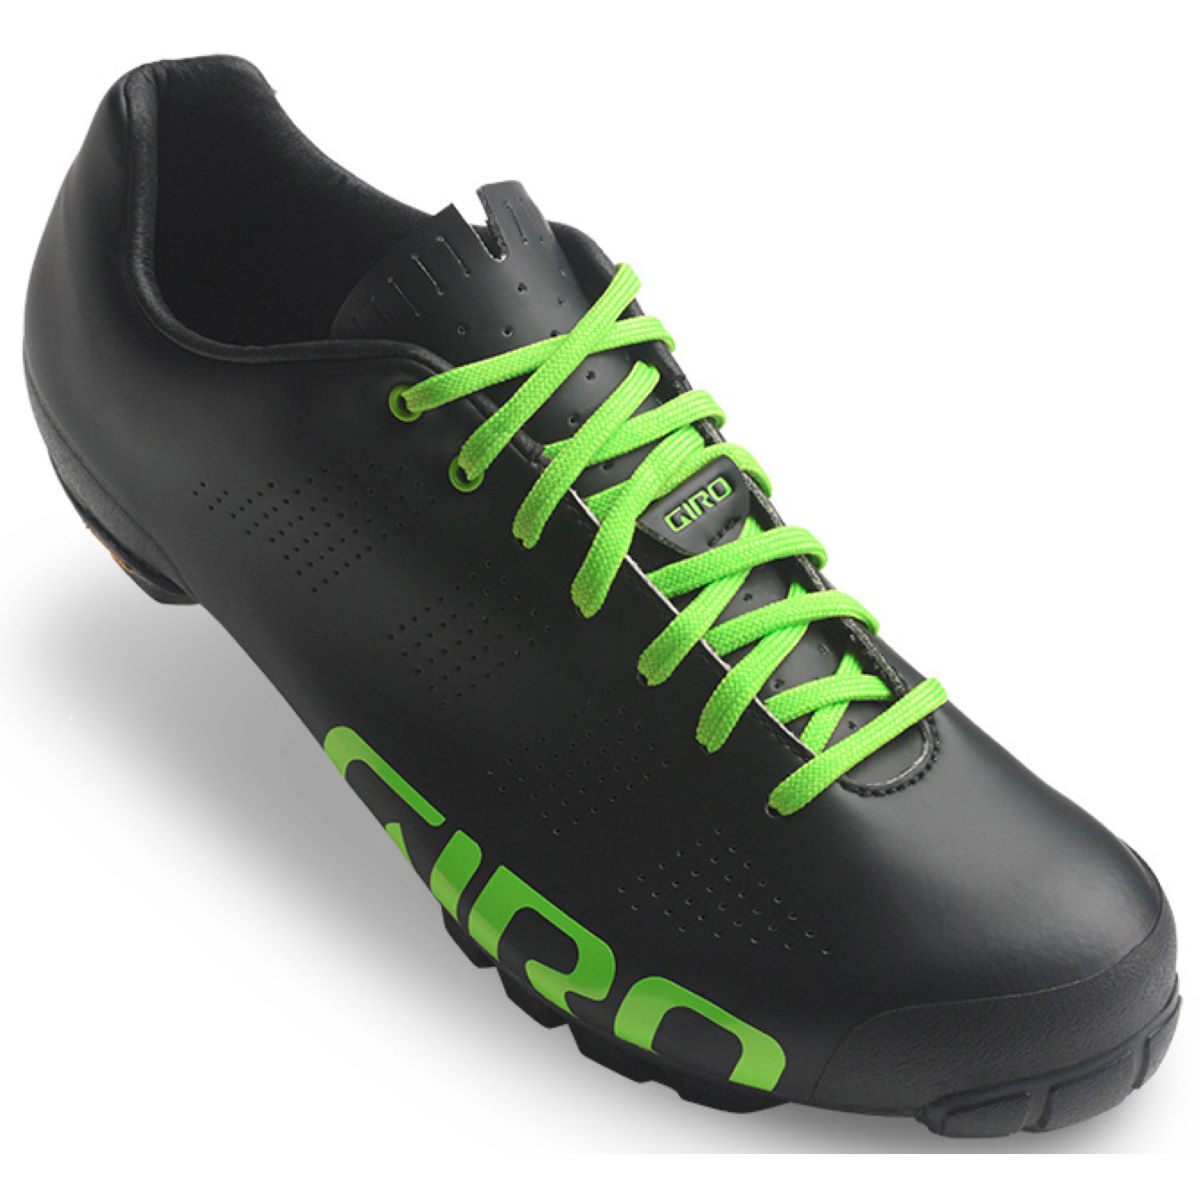 Zapatillas de MTB Giro Empire VR90 - Zapatillas MTB